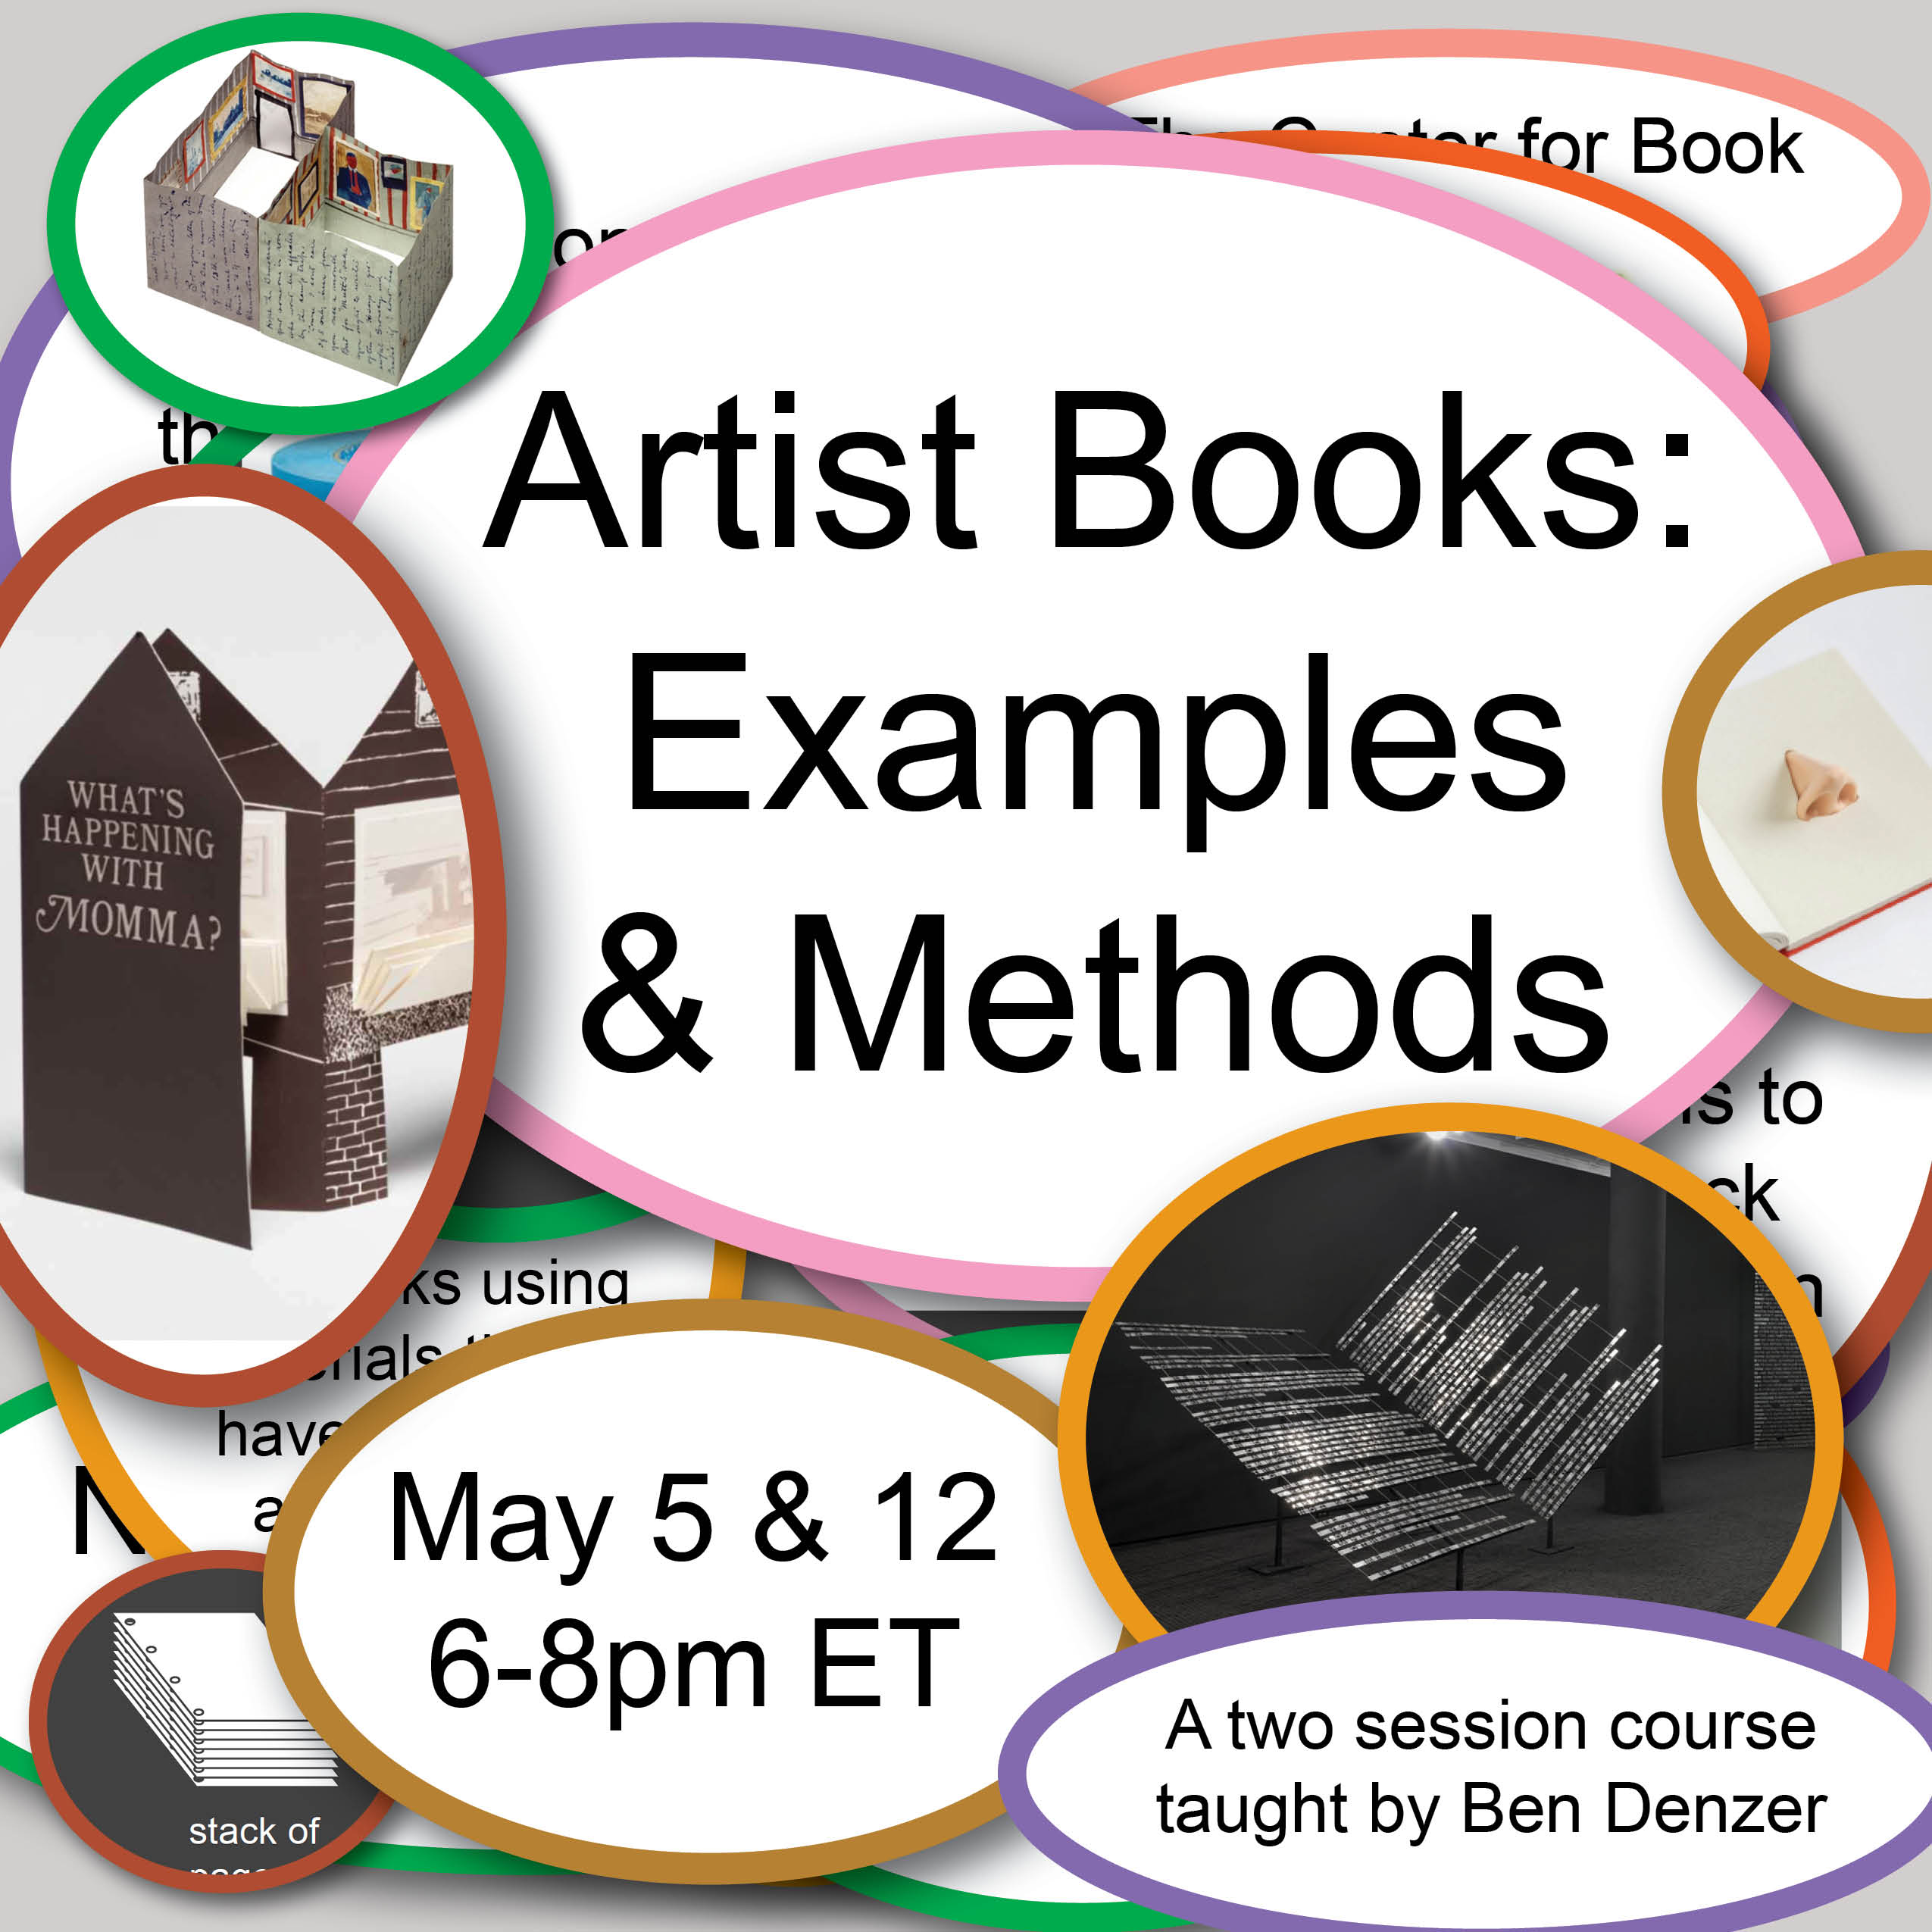 Cover image for Ben's Artist Books: Examples & Methods class.